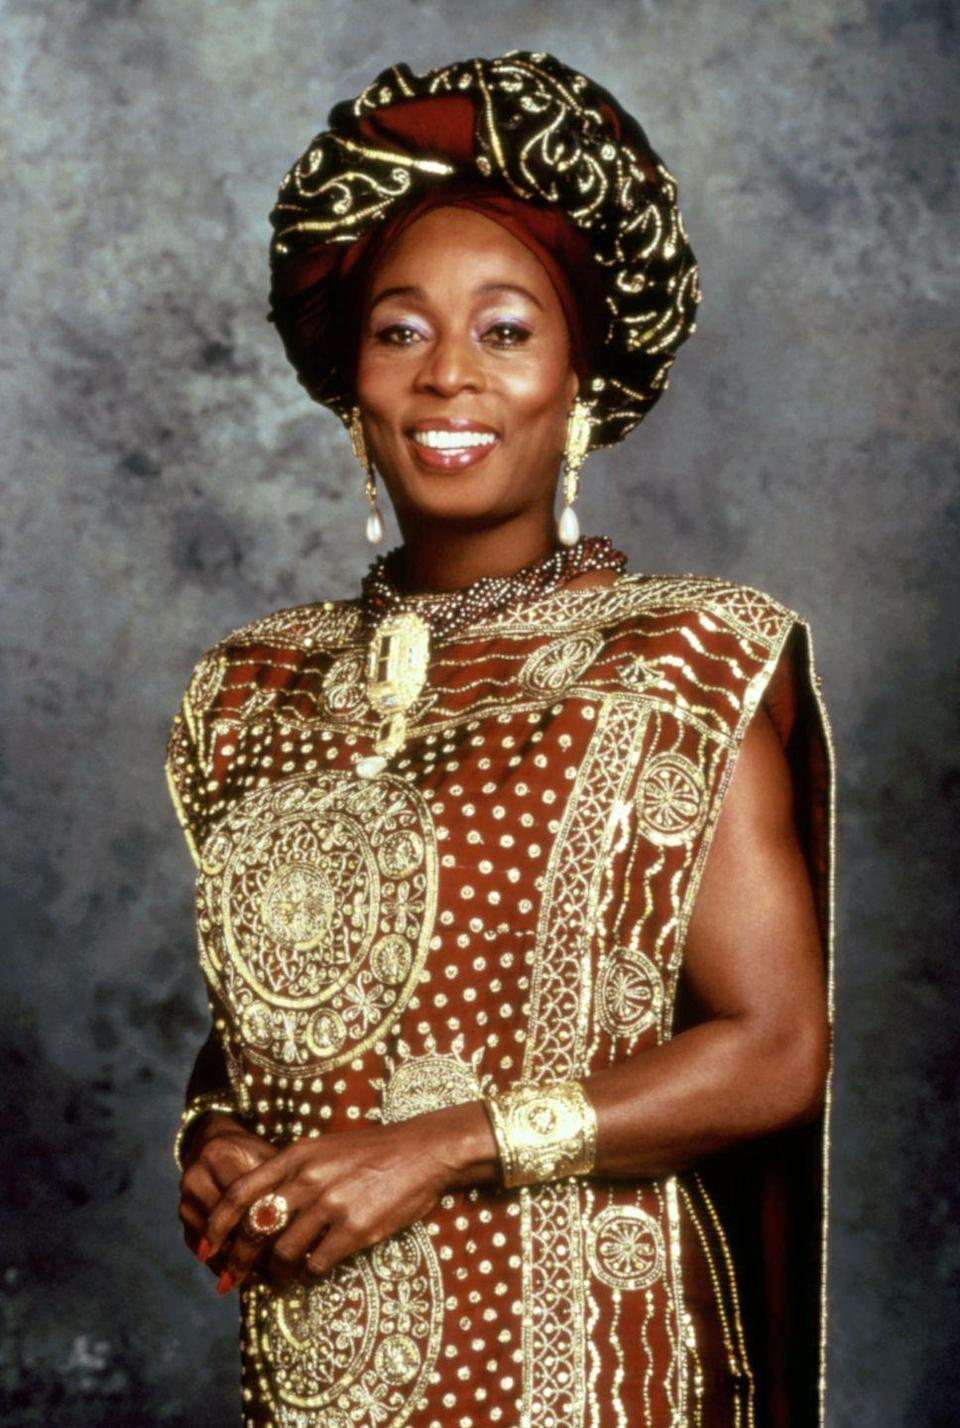 <p>Emmy nominated and long revered for her work ethic across all her films, Madge Sinclair always had a stately and powerful presence on-screen. From her role as Queen Aoleon in <em>Coming to America</em> all the way to her final film role as the voice of Sarabi in Disney's <em>The Lion King,</em> Sinclair broke down barriers in the film industry for Black women up until her passing.</p>